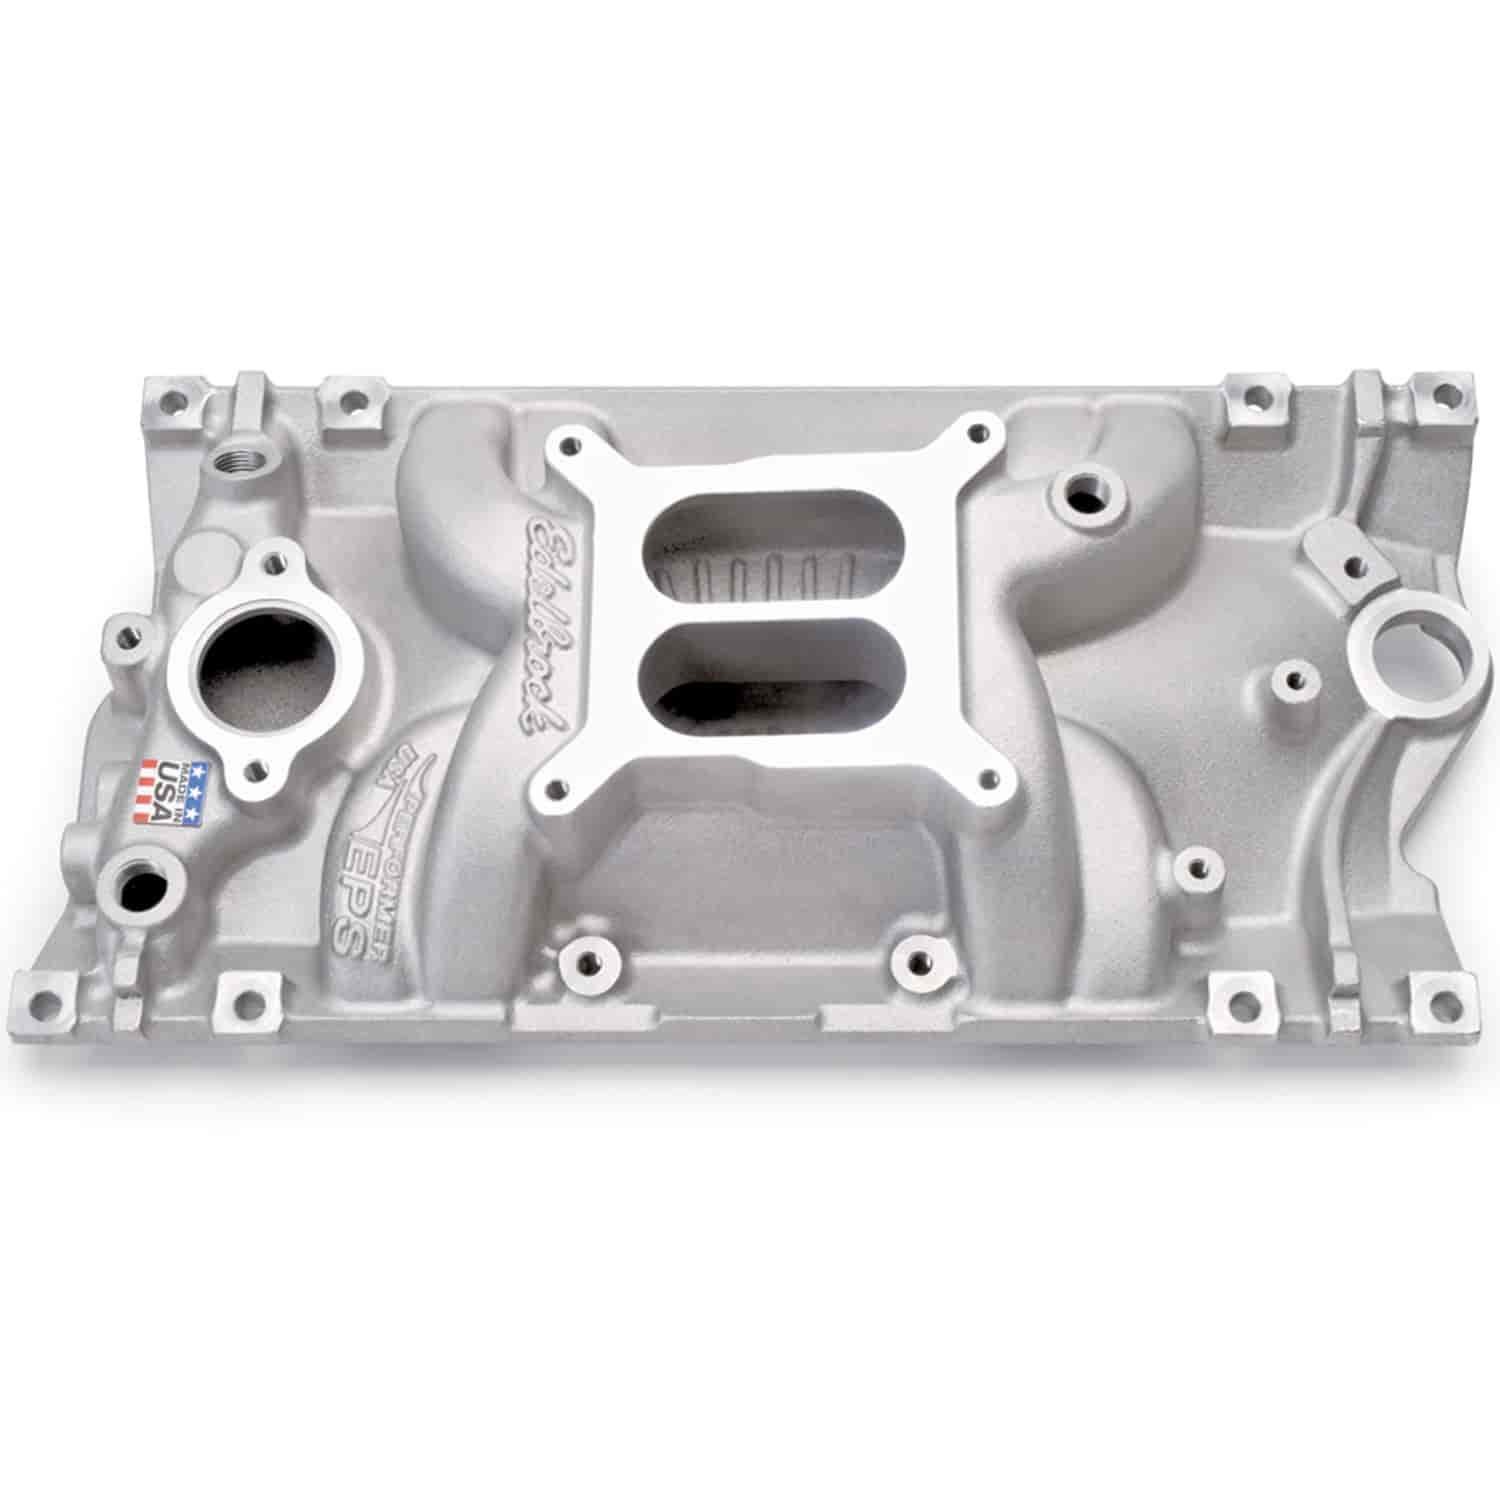 Edelbrock 2716 - Edelbrock Performer EPS Intake Manifolds for Chevrolet